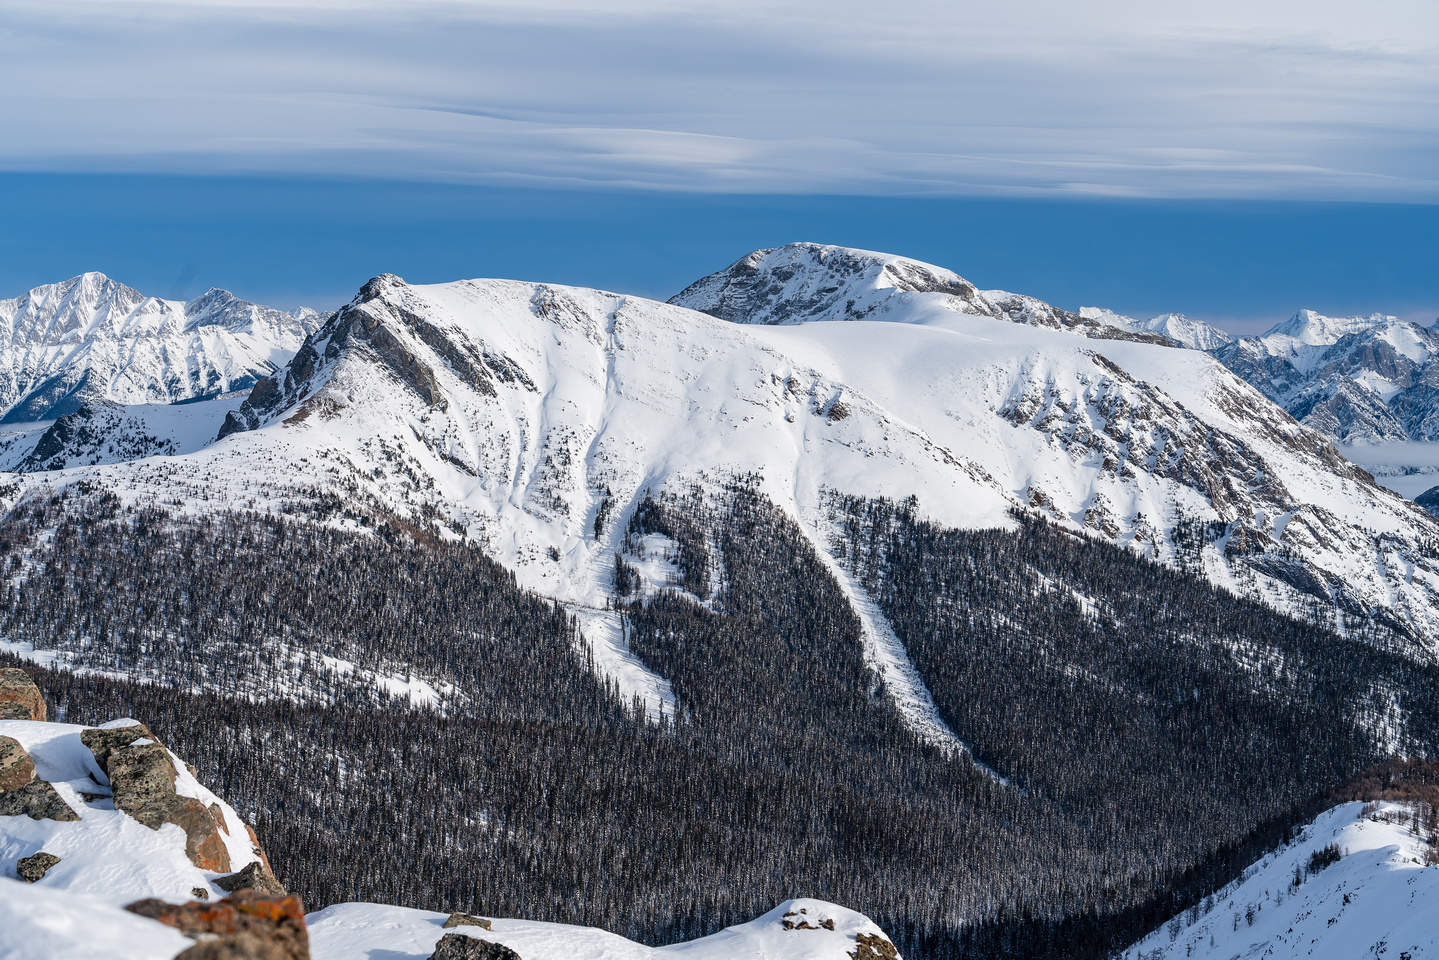 Copper Mountain has some nice ski lines.